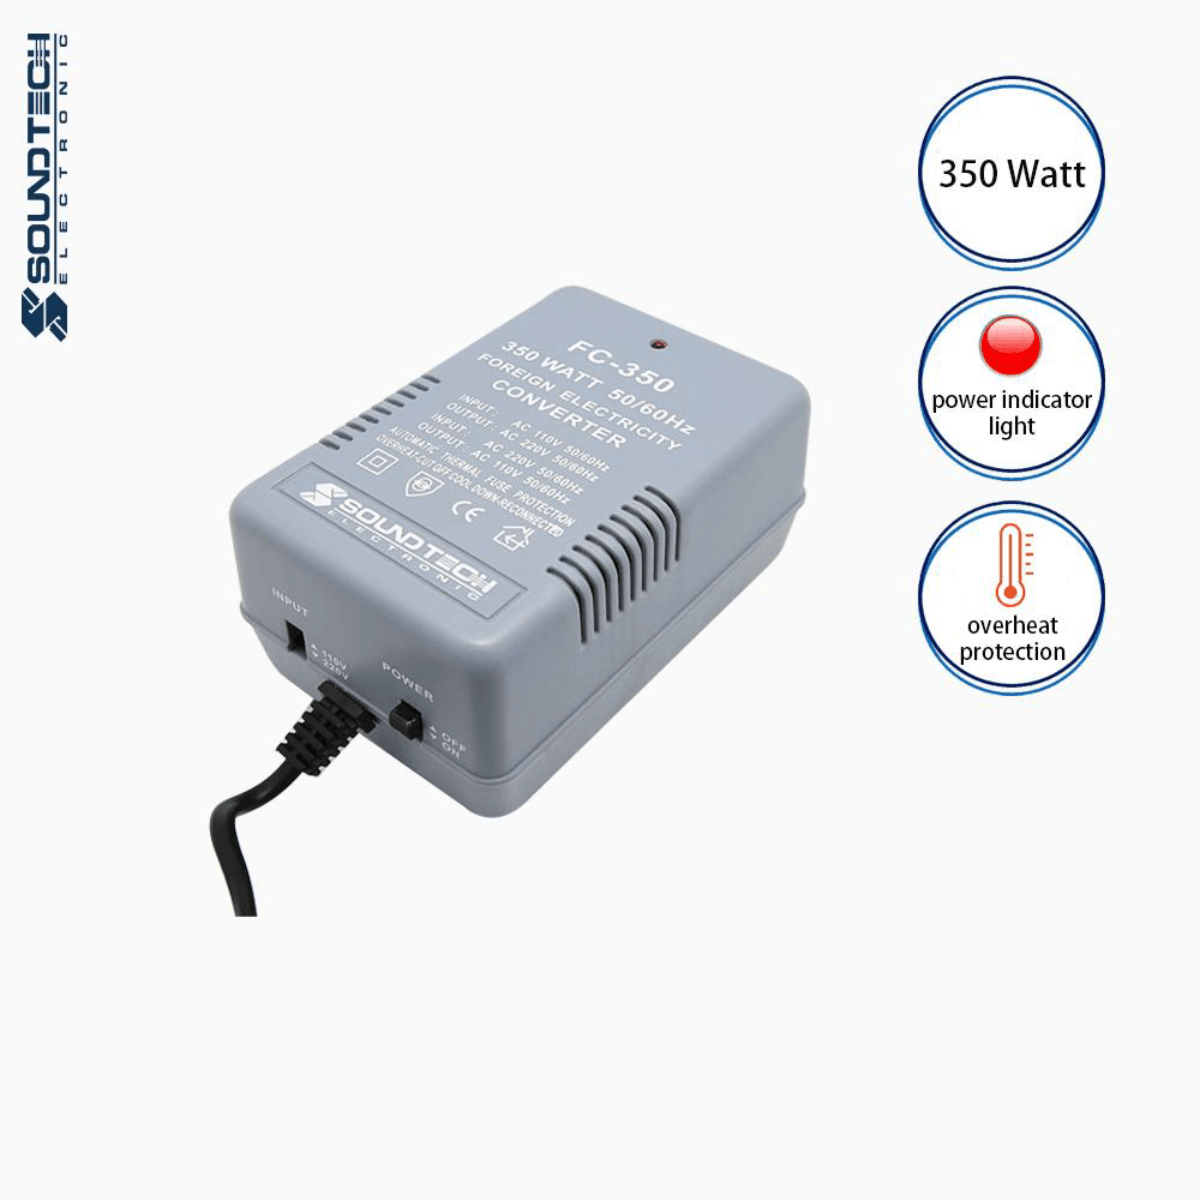 Soundteoh 350 Watt Foreign Electricity AC-AC Converter FC-350